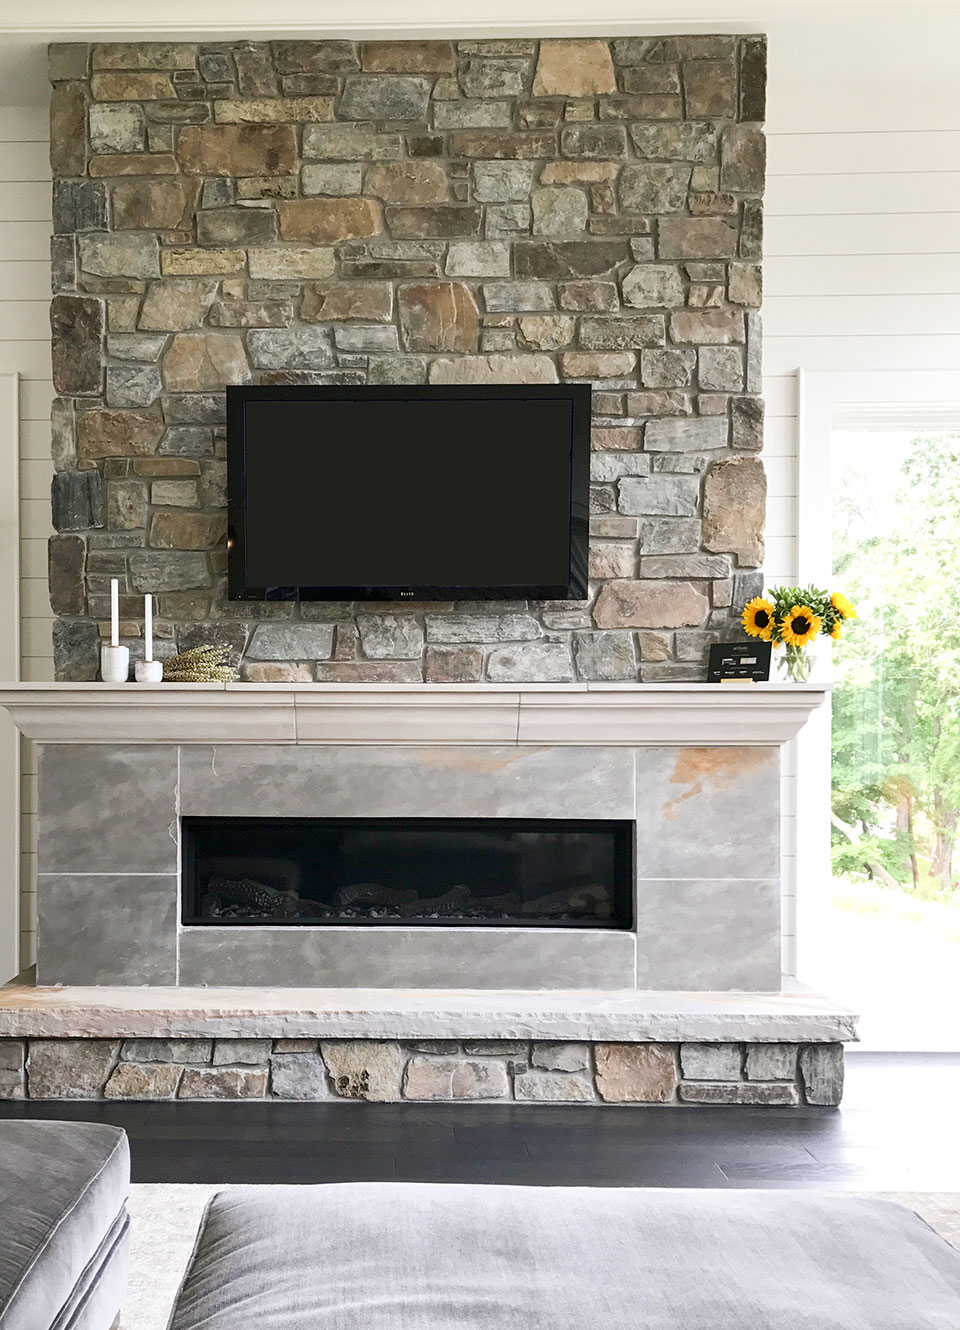 Artisan home tour - cultured stone fireplace with slate surround and hearth. Light and bright living room.